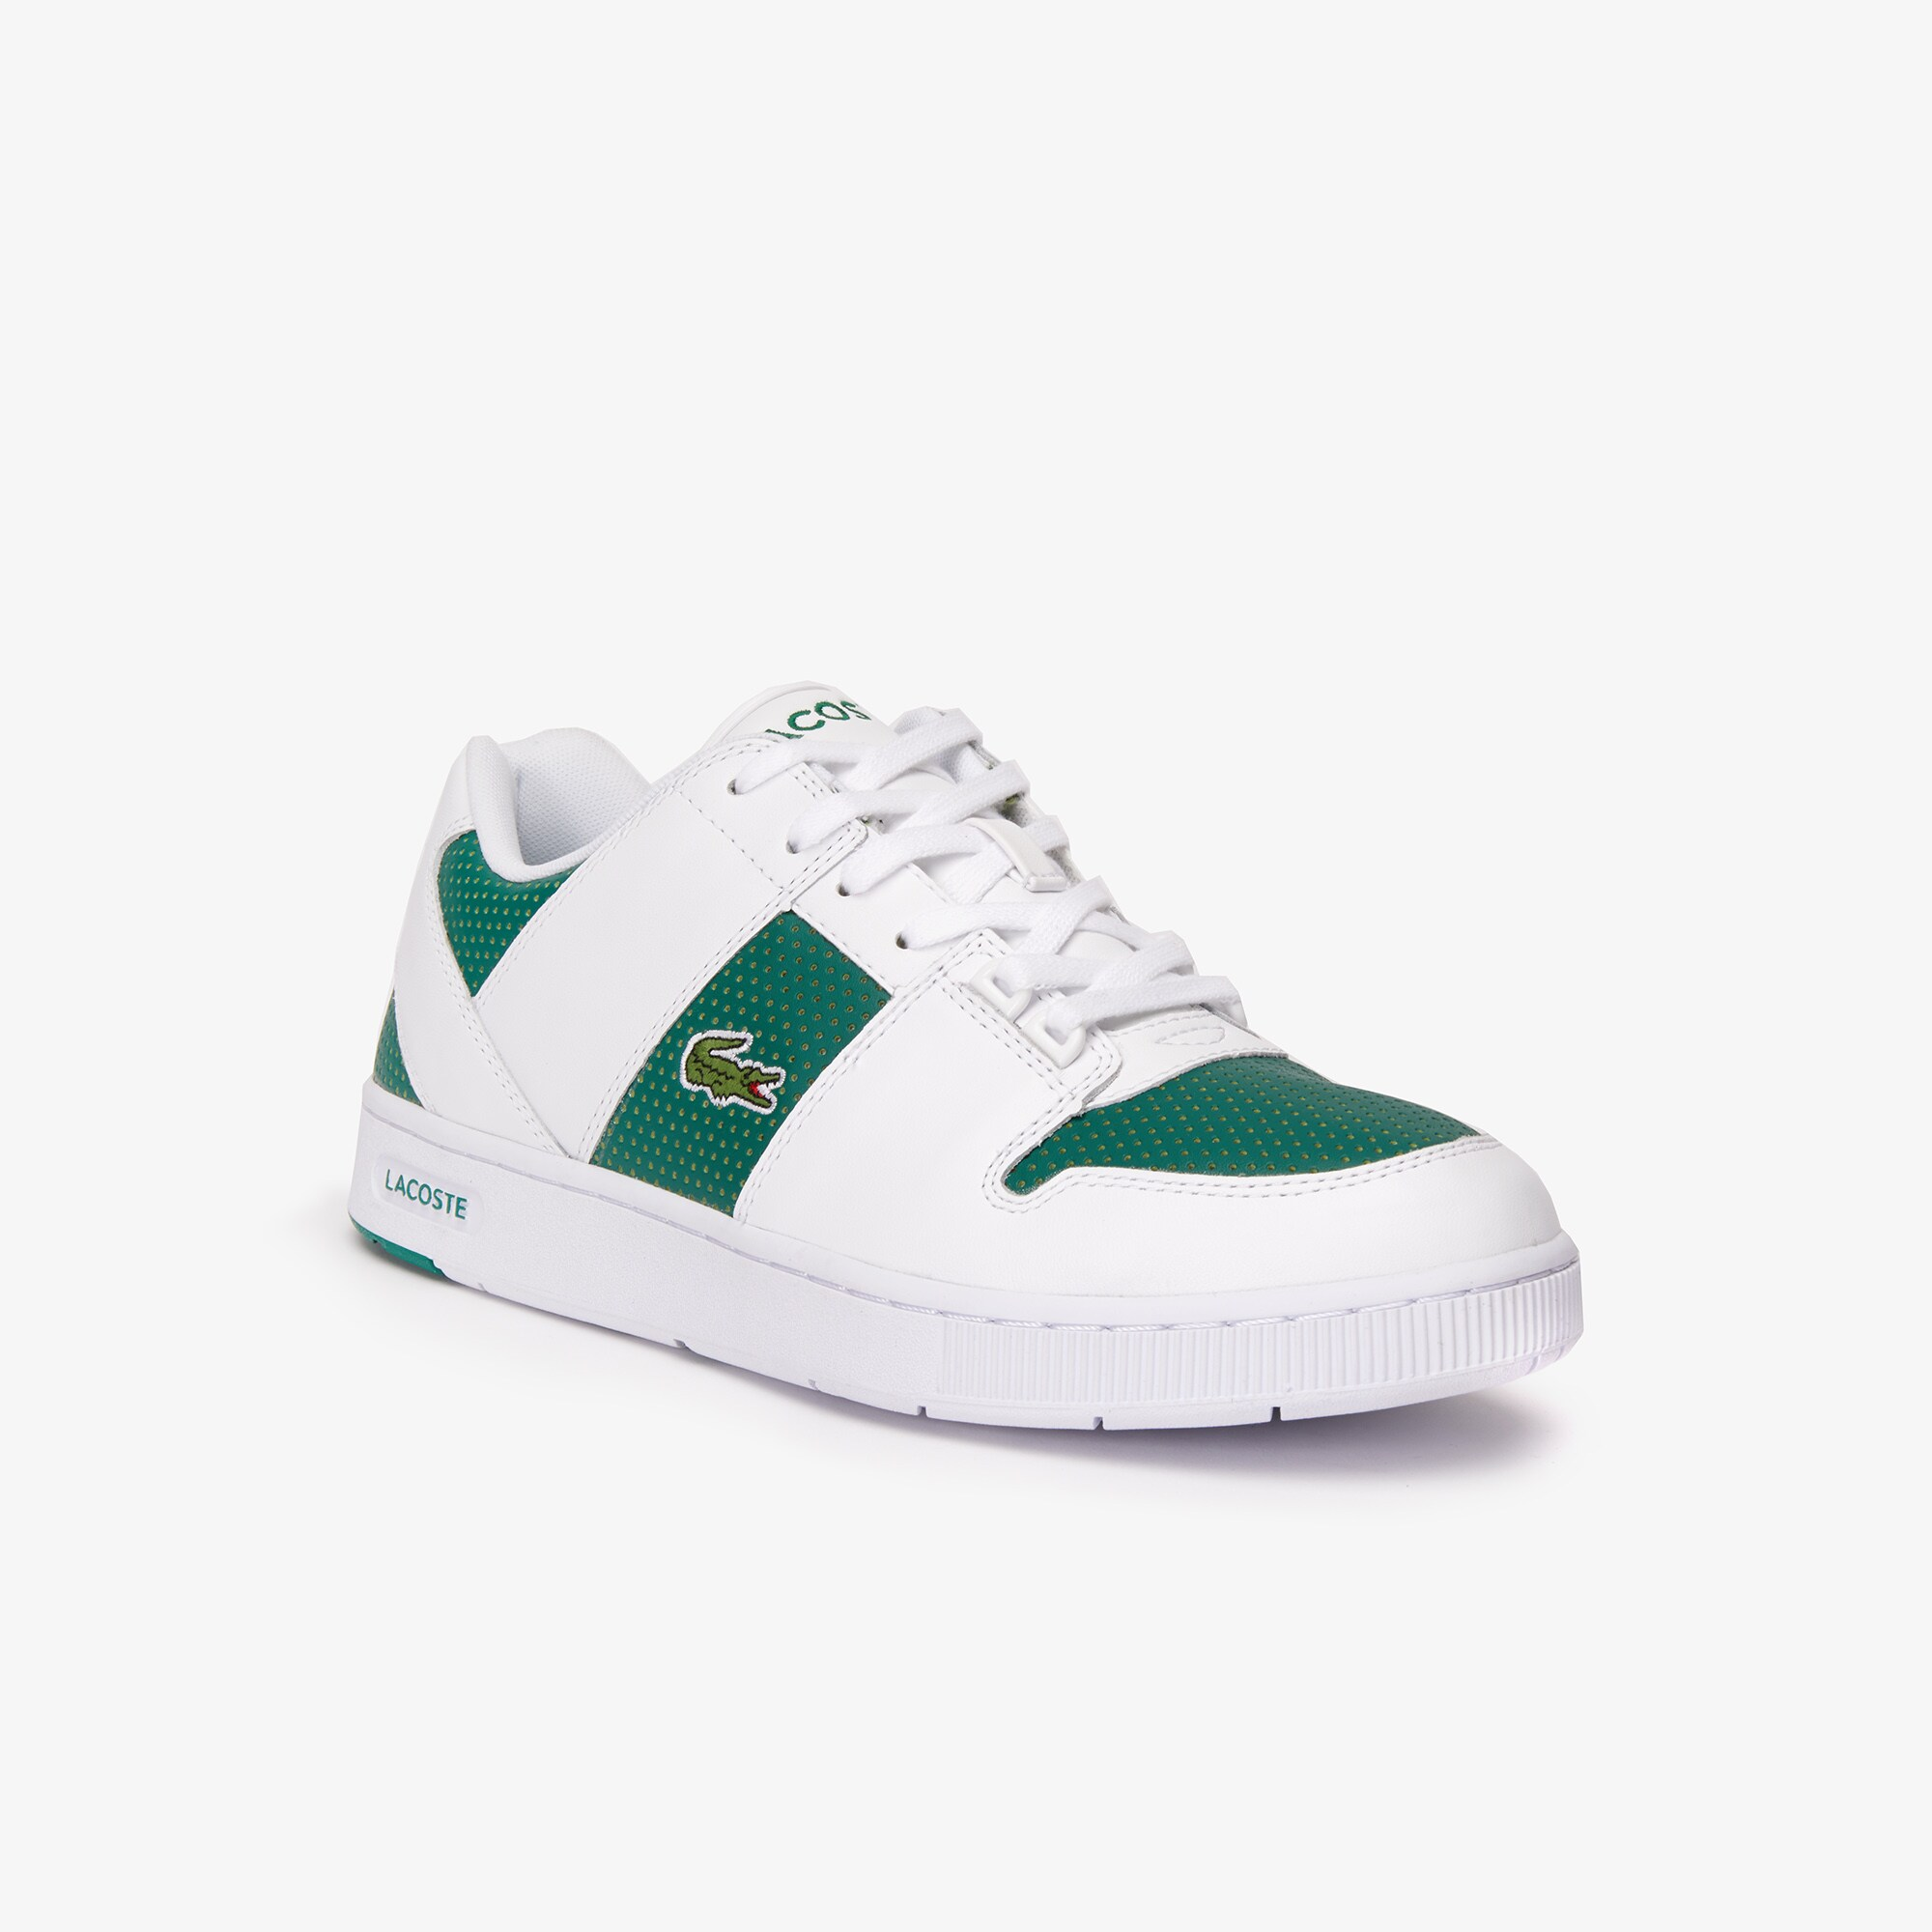 Lacoste Chaussures Hommecollection Hommecollection Chaussures Hommecollection Lacoste Chaussures Lacoste Chaussures Hommecollection Lacoste fYI7b6gyv